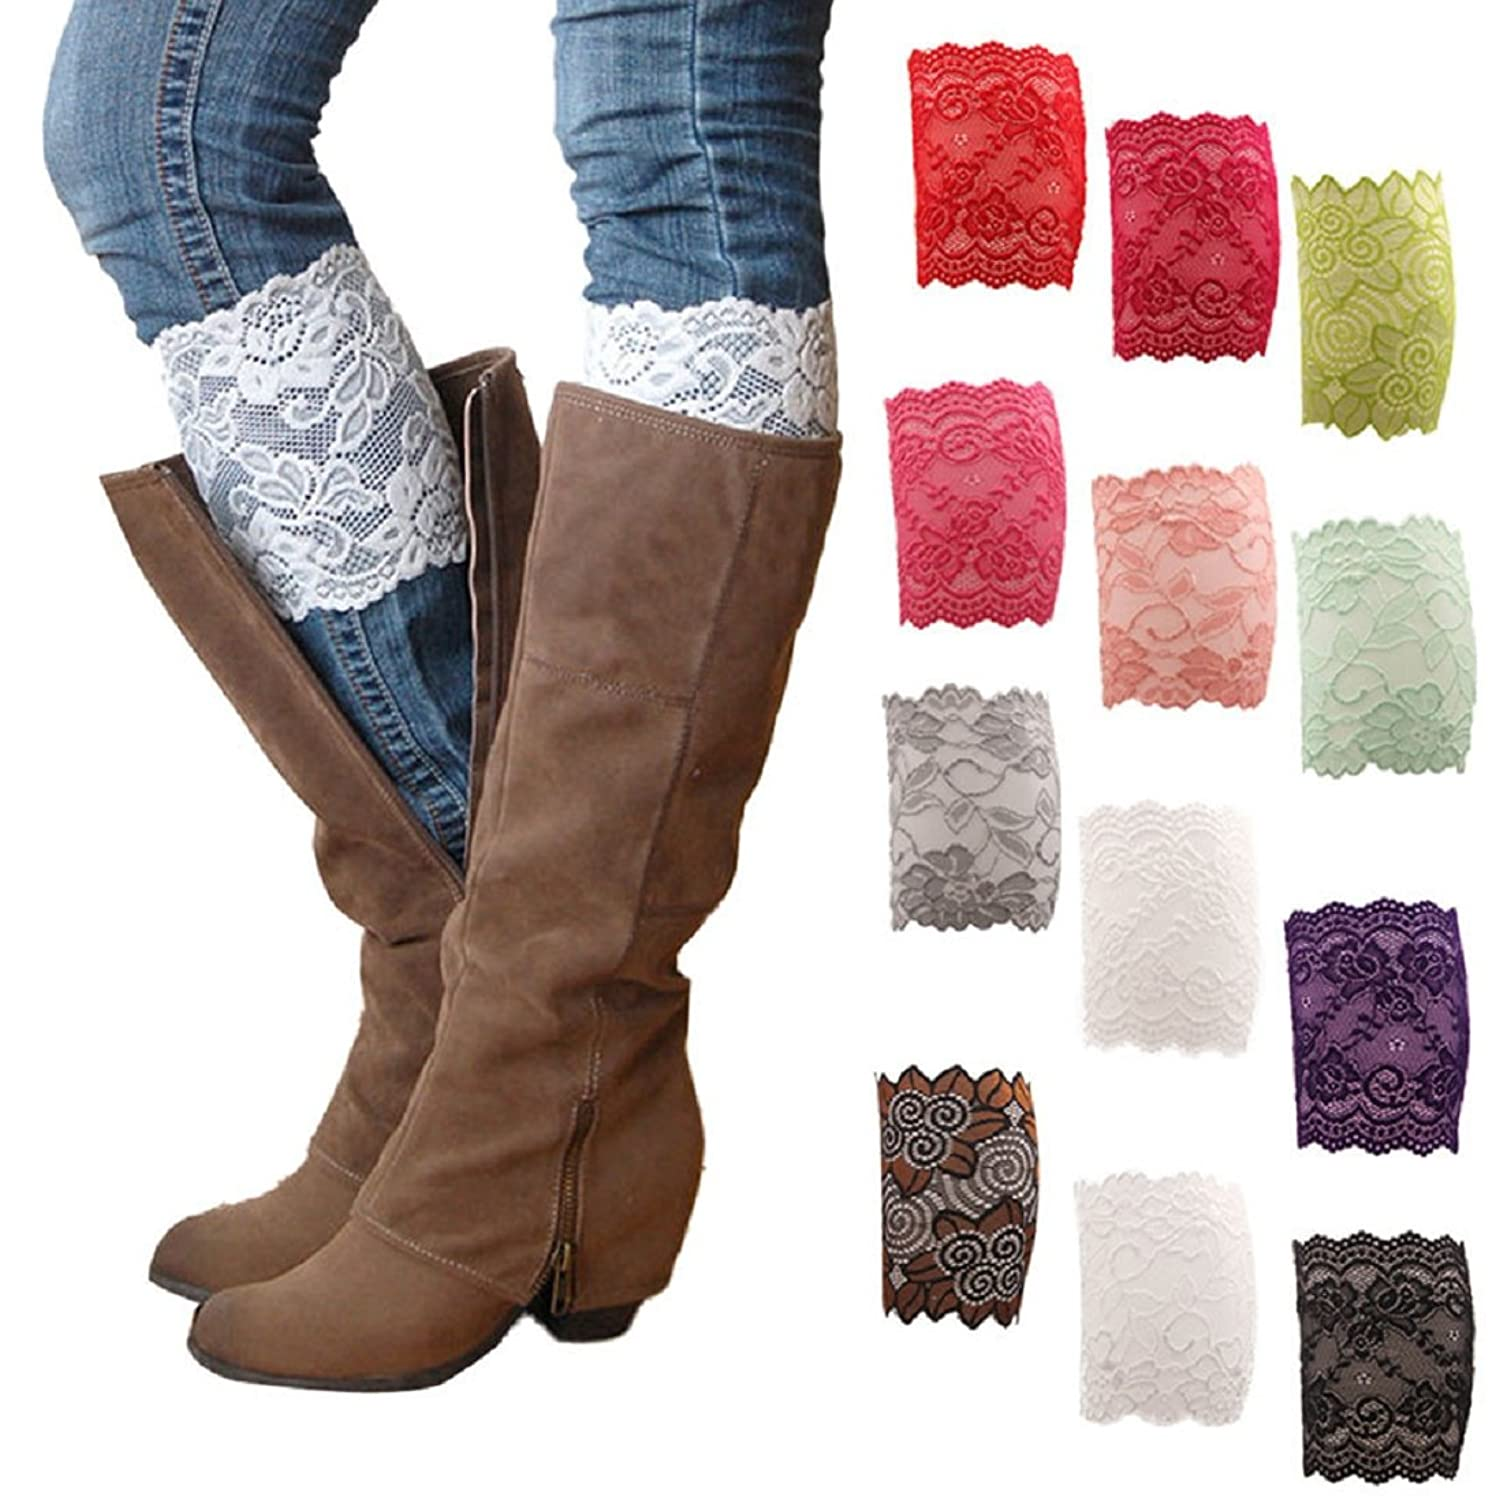 HP95(TM) Womens Stretch Boot Leg Cuffs Soft Leg Warmer Boot Socks